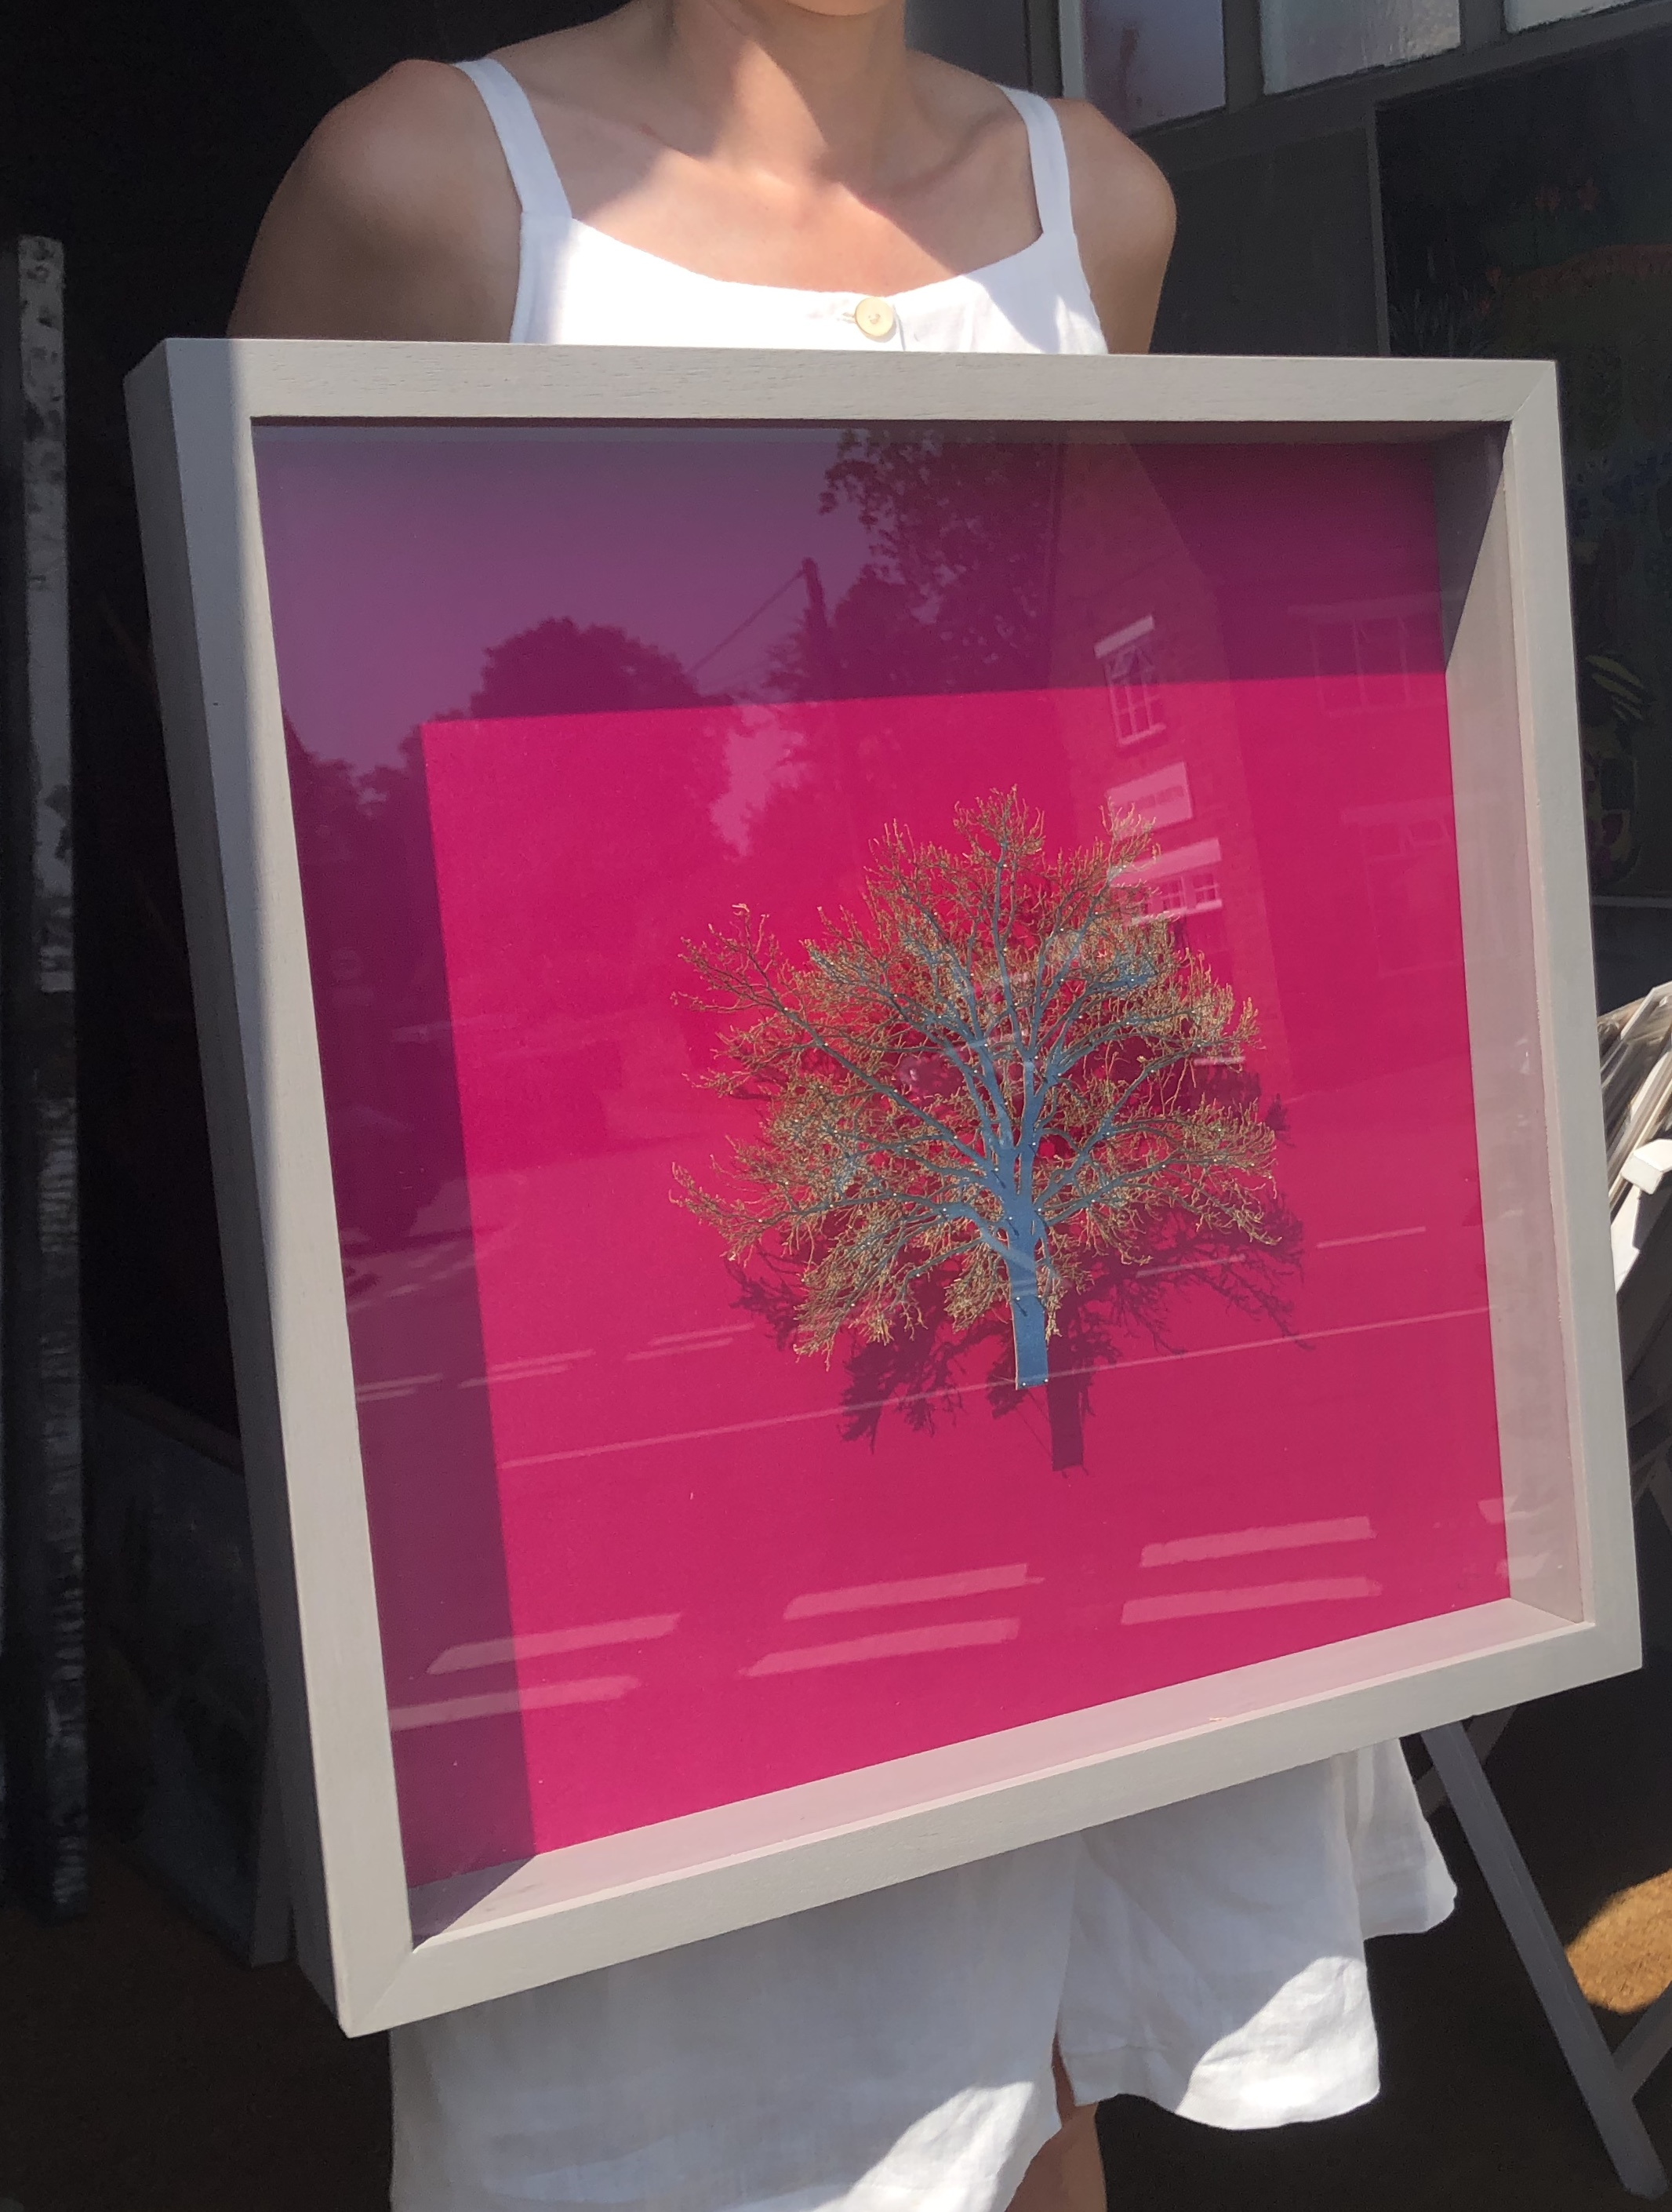 Emma Levine art for sale. Hot pink background with bright green tree sculpture set in deep frame.